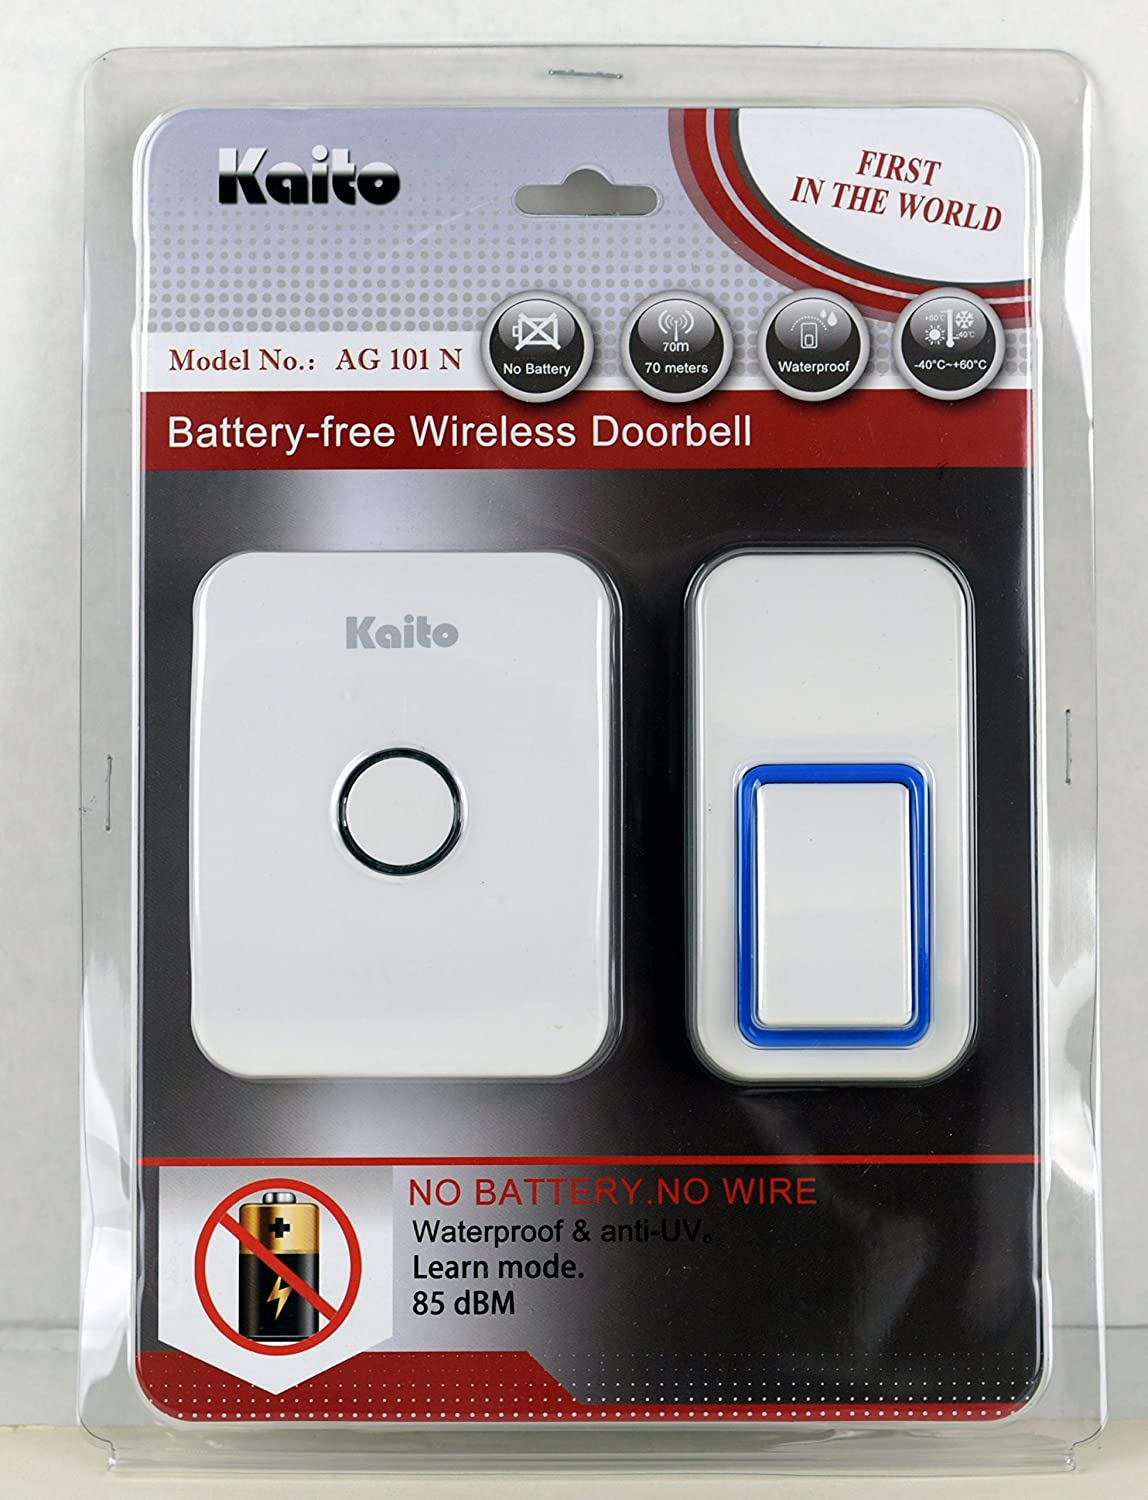 Kaito Wireless Doorbell No Battery Needed For Both Receiver And Electrical Wiring Not Working Transmitter Free Door Chime With 25 Ring Tones Waterproof Synchronize Work In